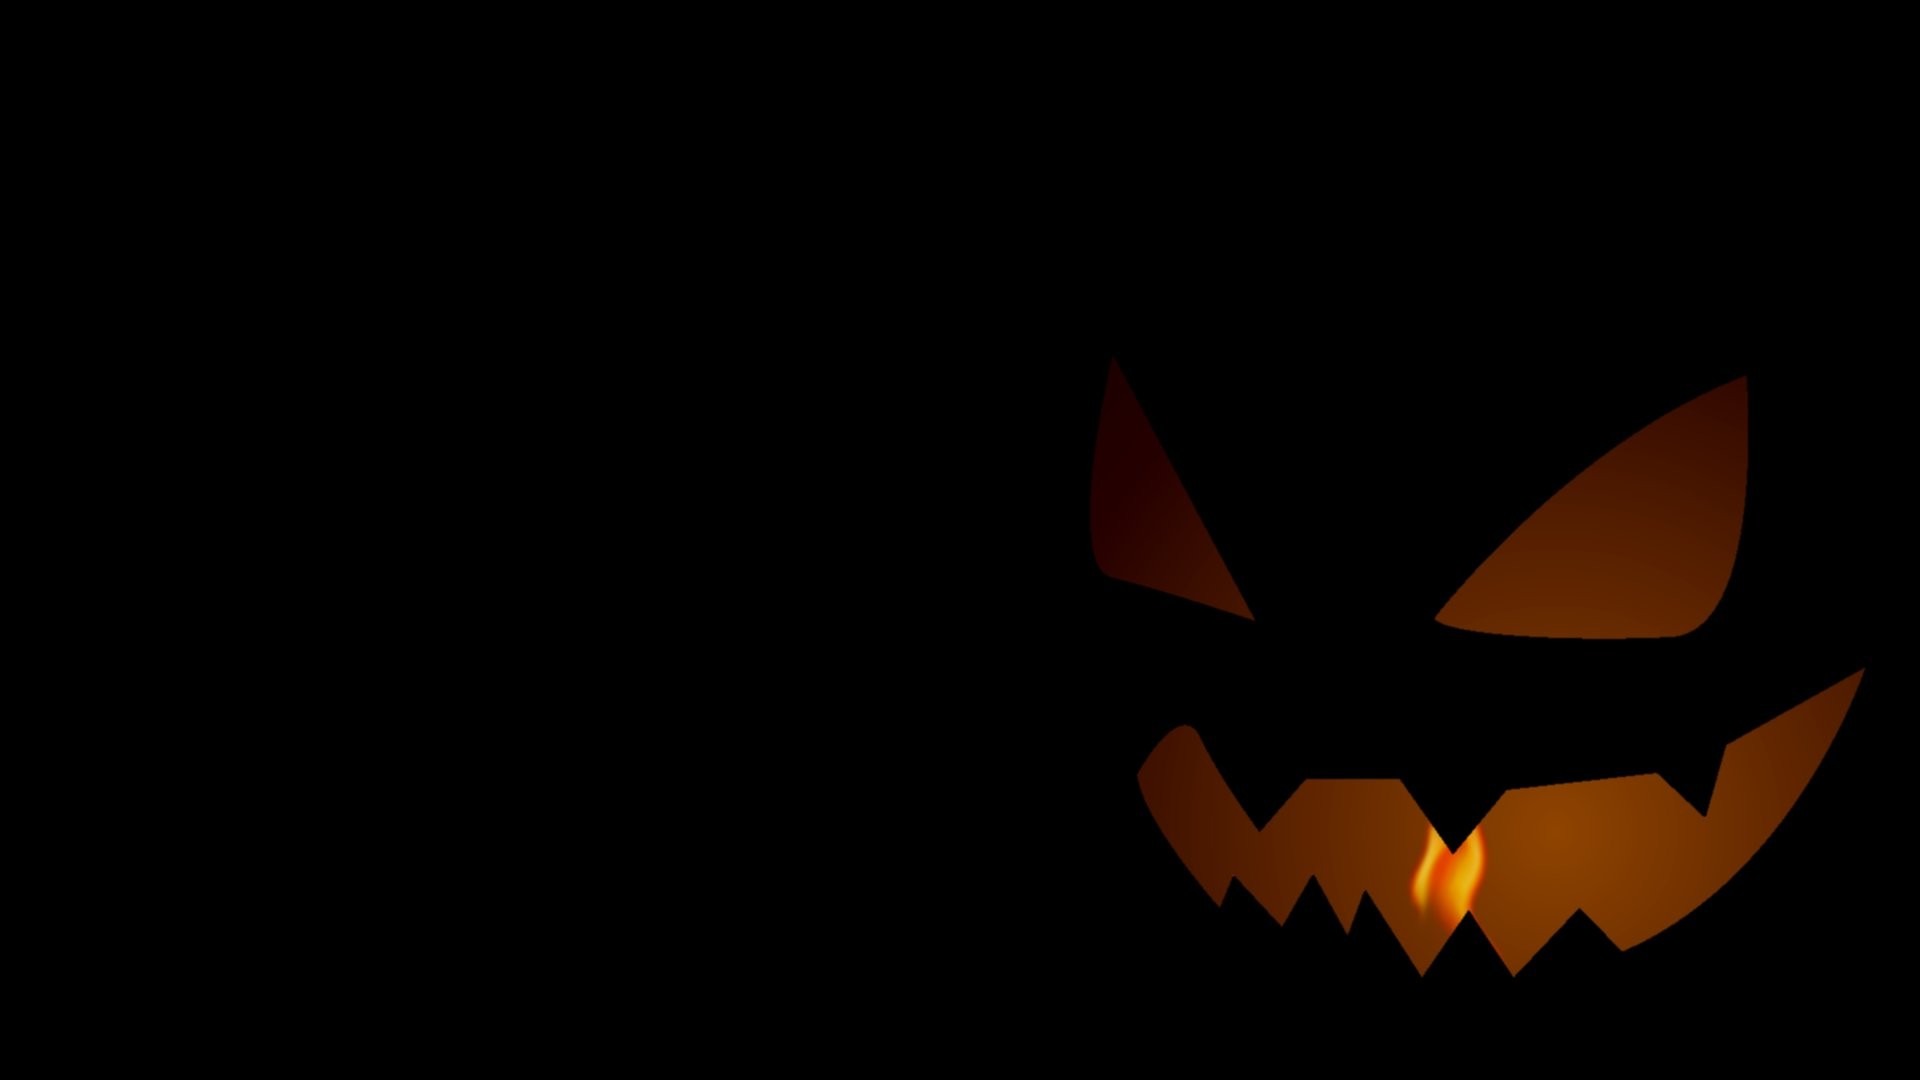 52 Scary Halloween Wallpapers For Desktop